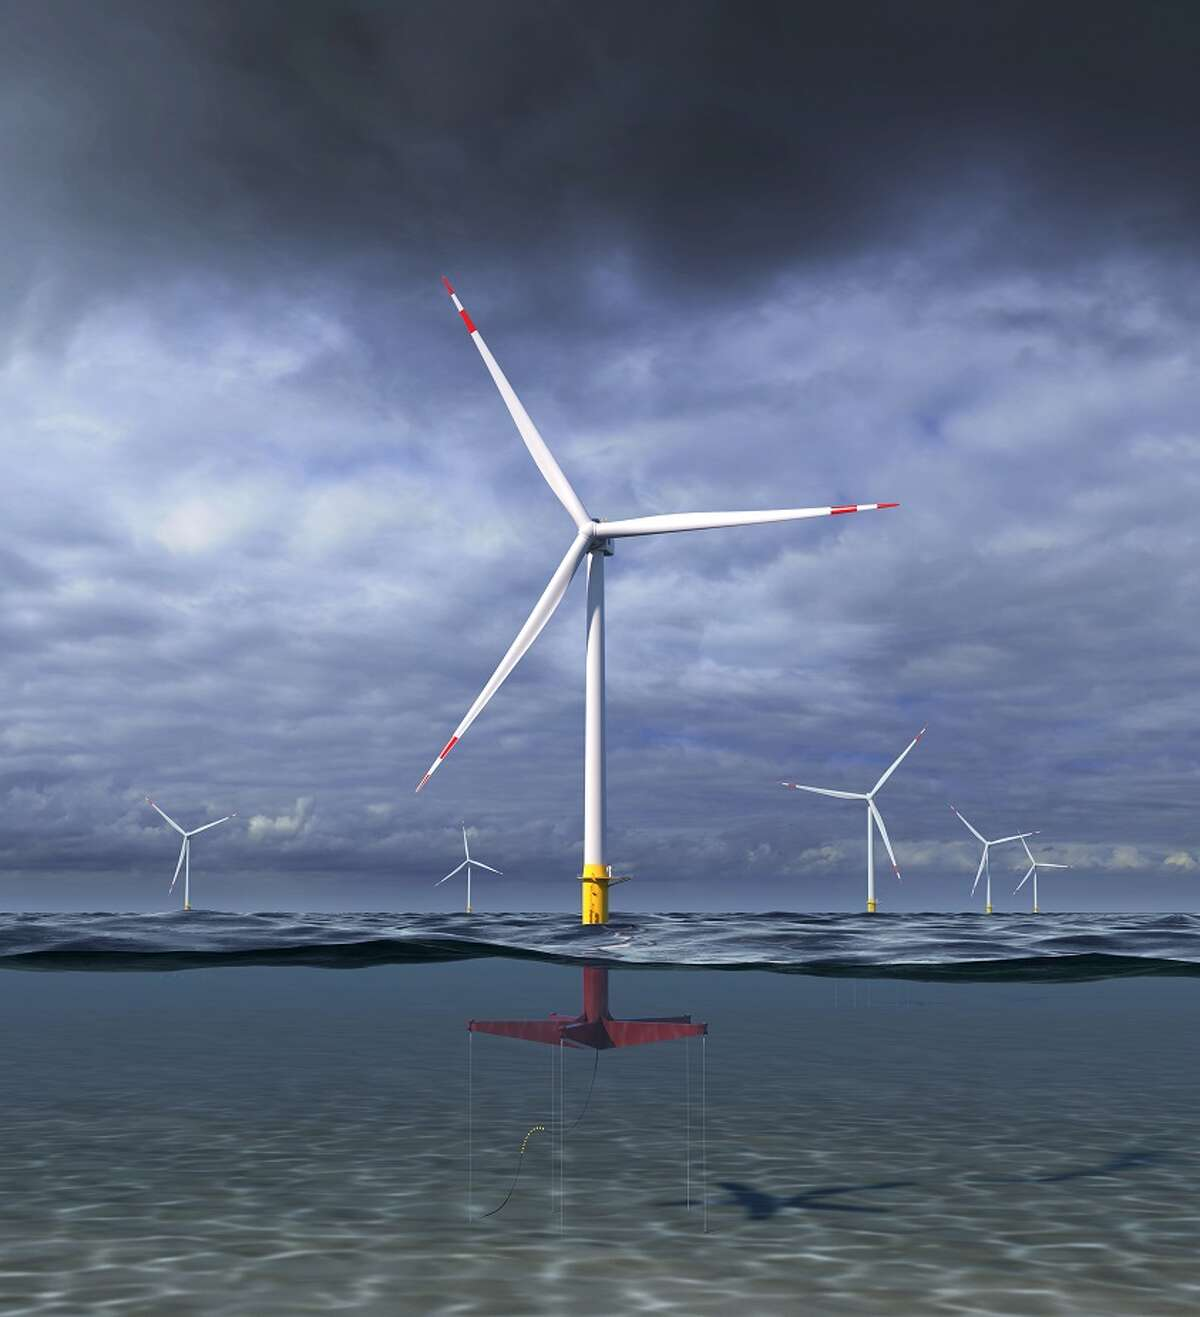 An artist's rendering of the 12 MW floating wind turbine concept GE Research and Glosten are designing as part of their Atlantis program project with ARPA-E.